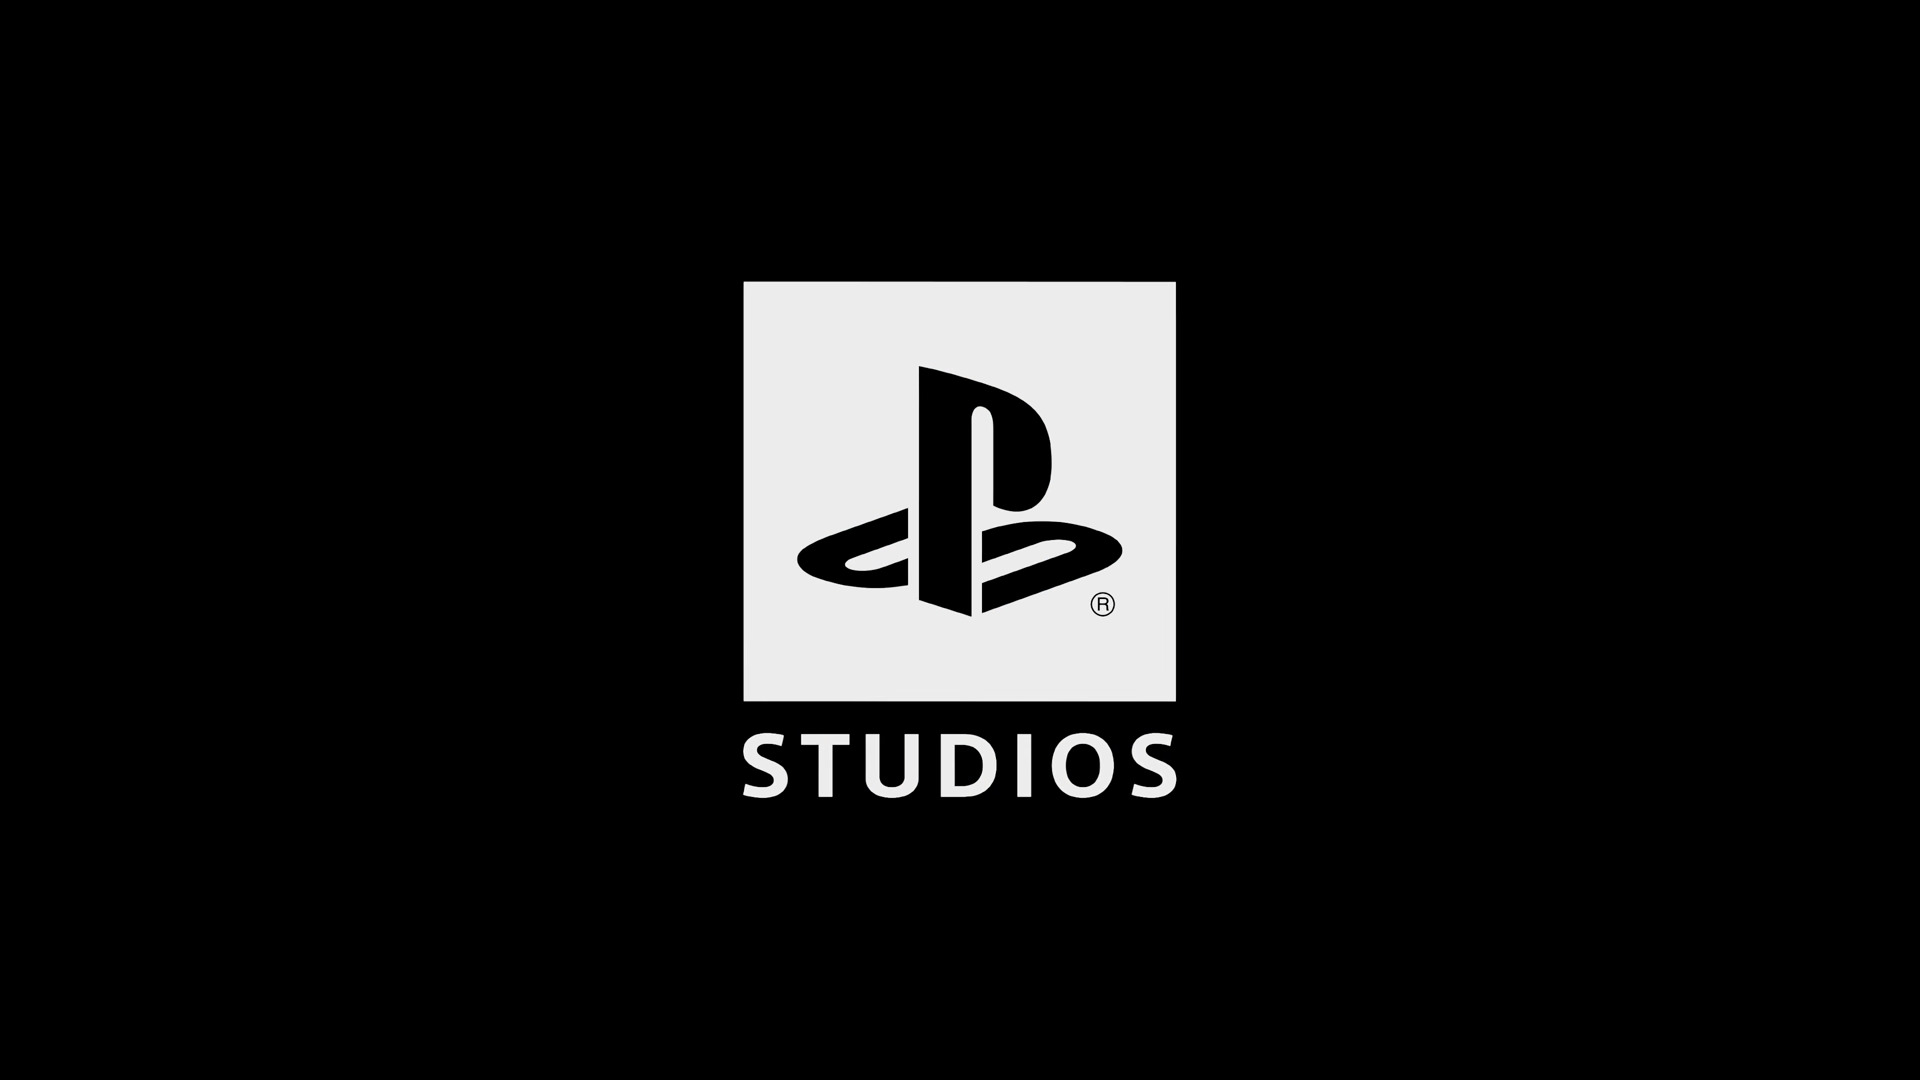 PlayStation 5: Sony may add a feature similar to Xbox Smart Delivery